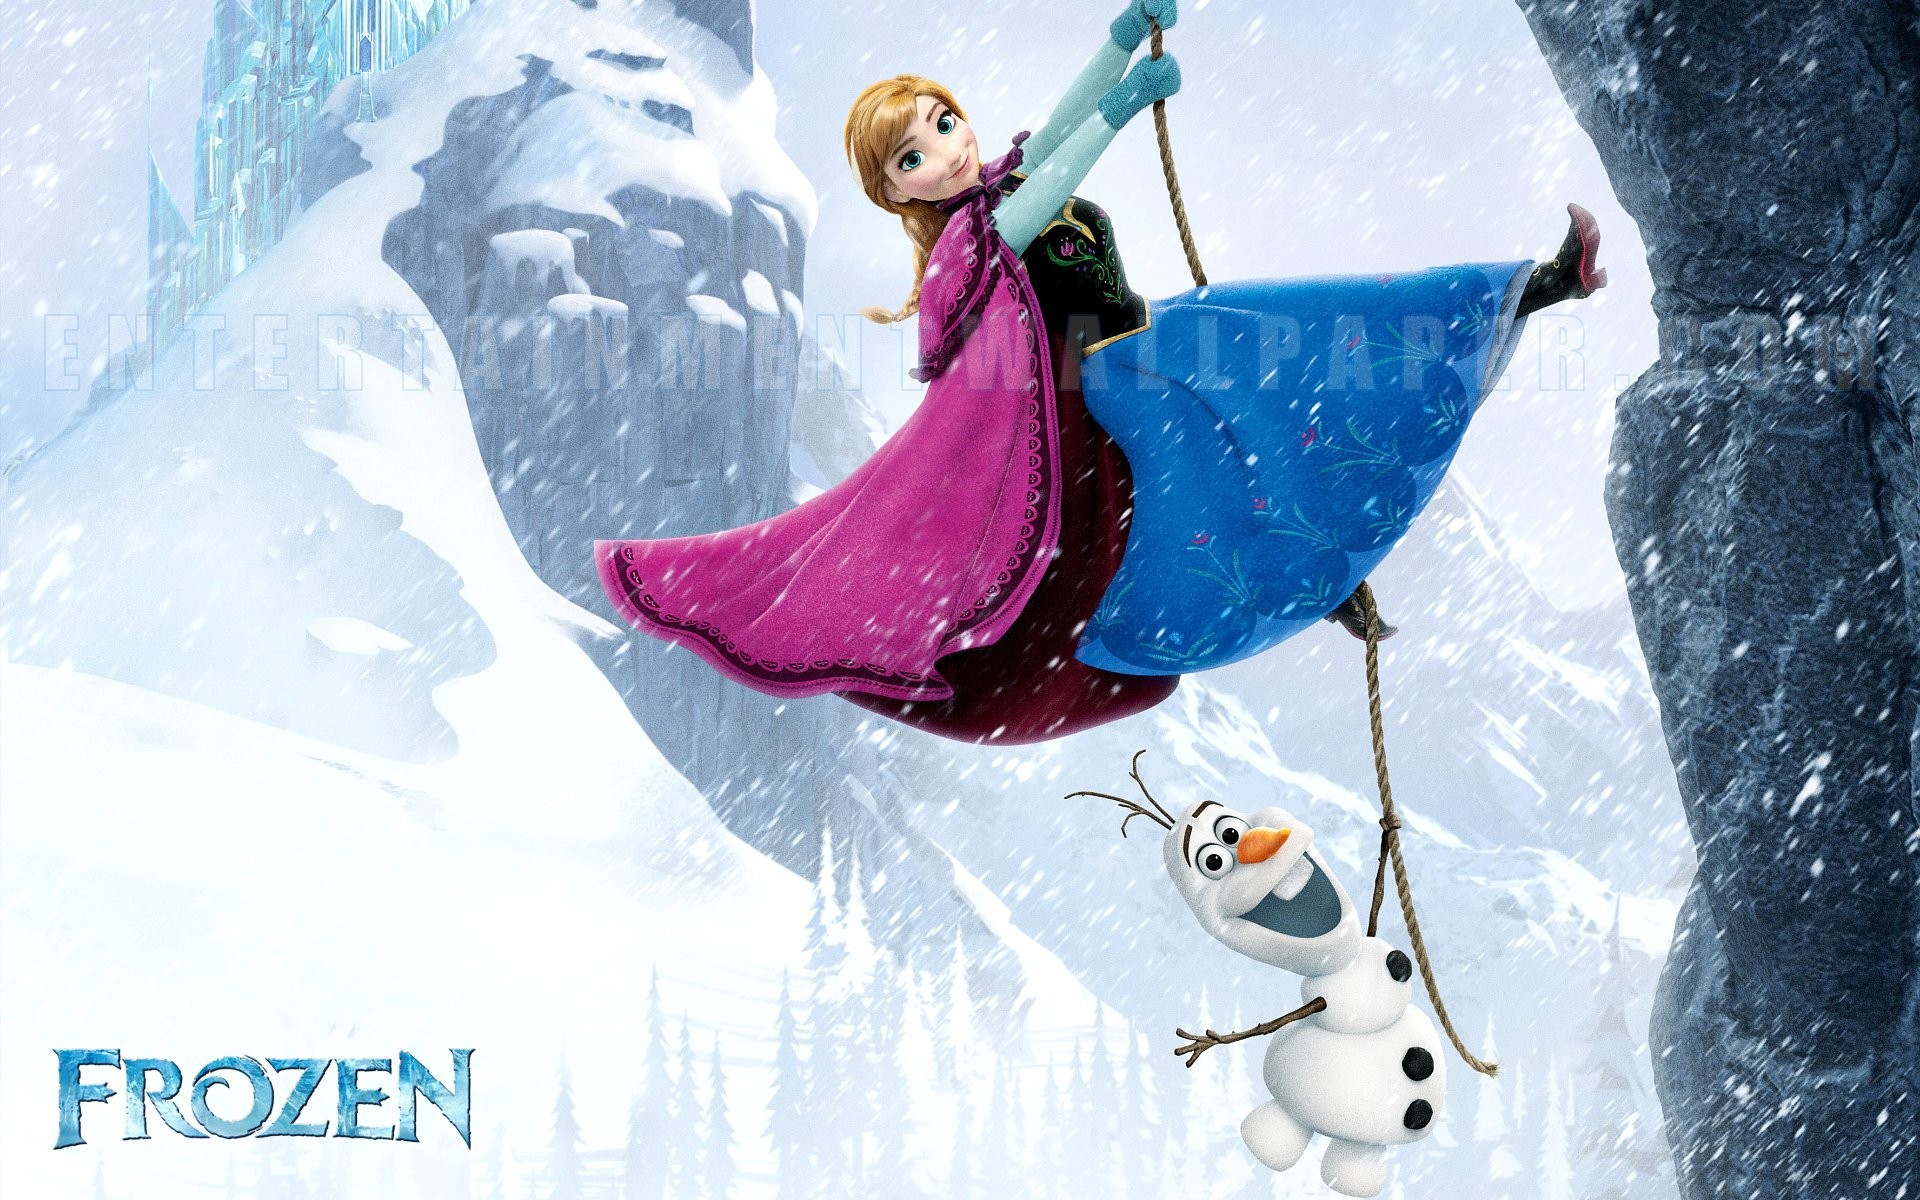 Frozen Wallpaper - Frozen Wallpaper (36149212) - Fanpop